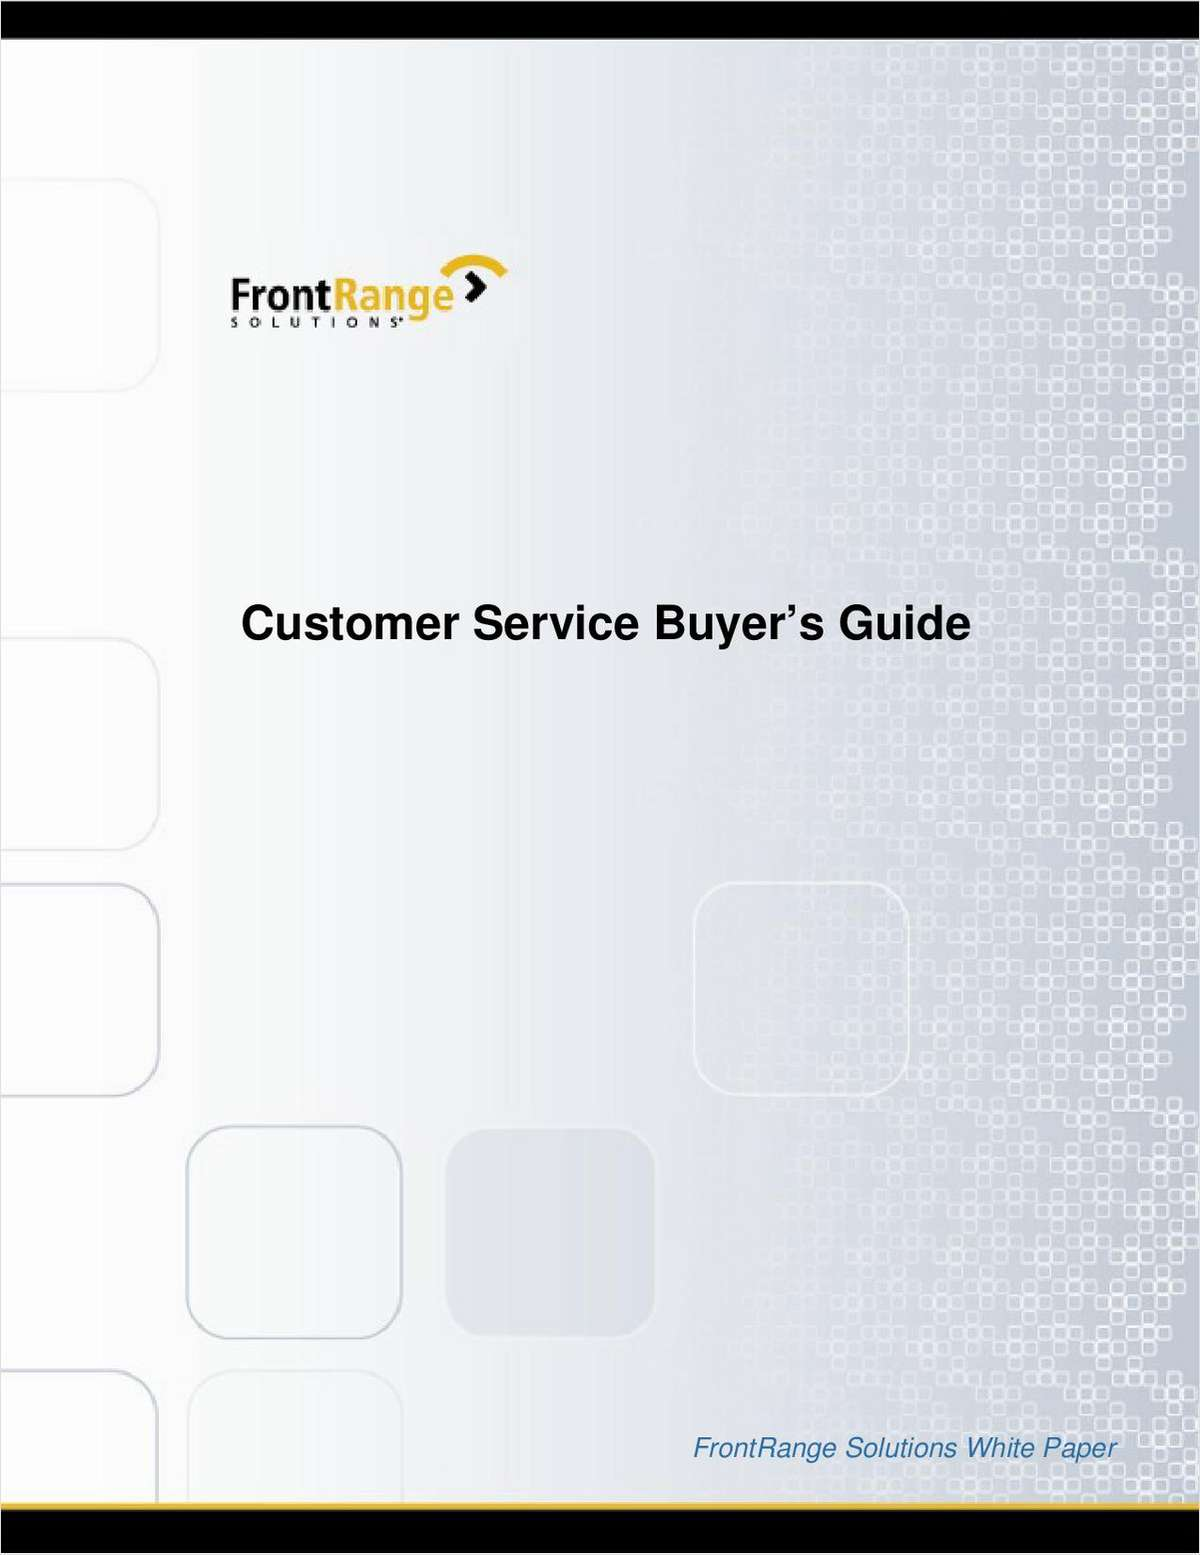 Customer Service Buyer's Guide